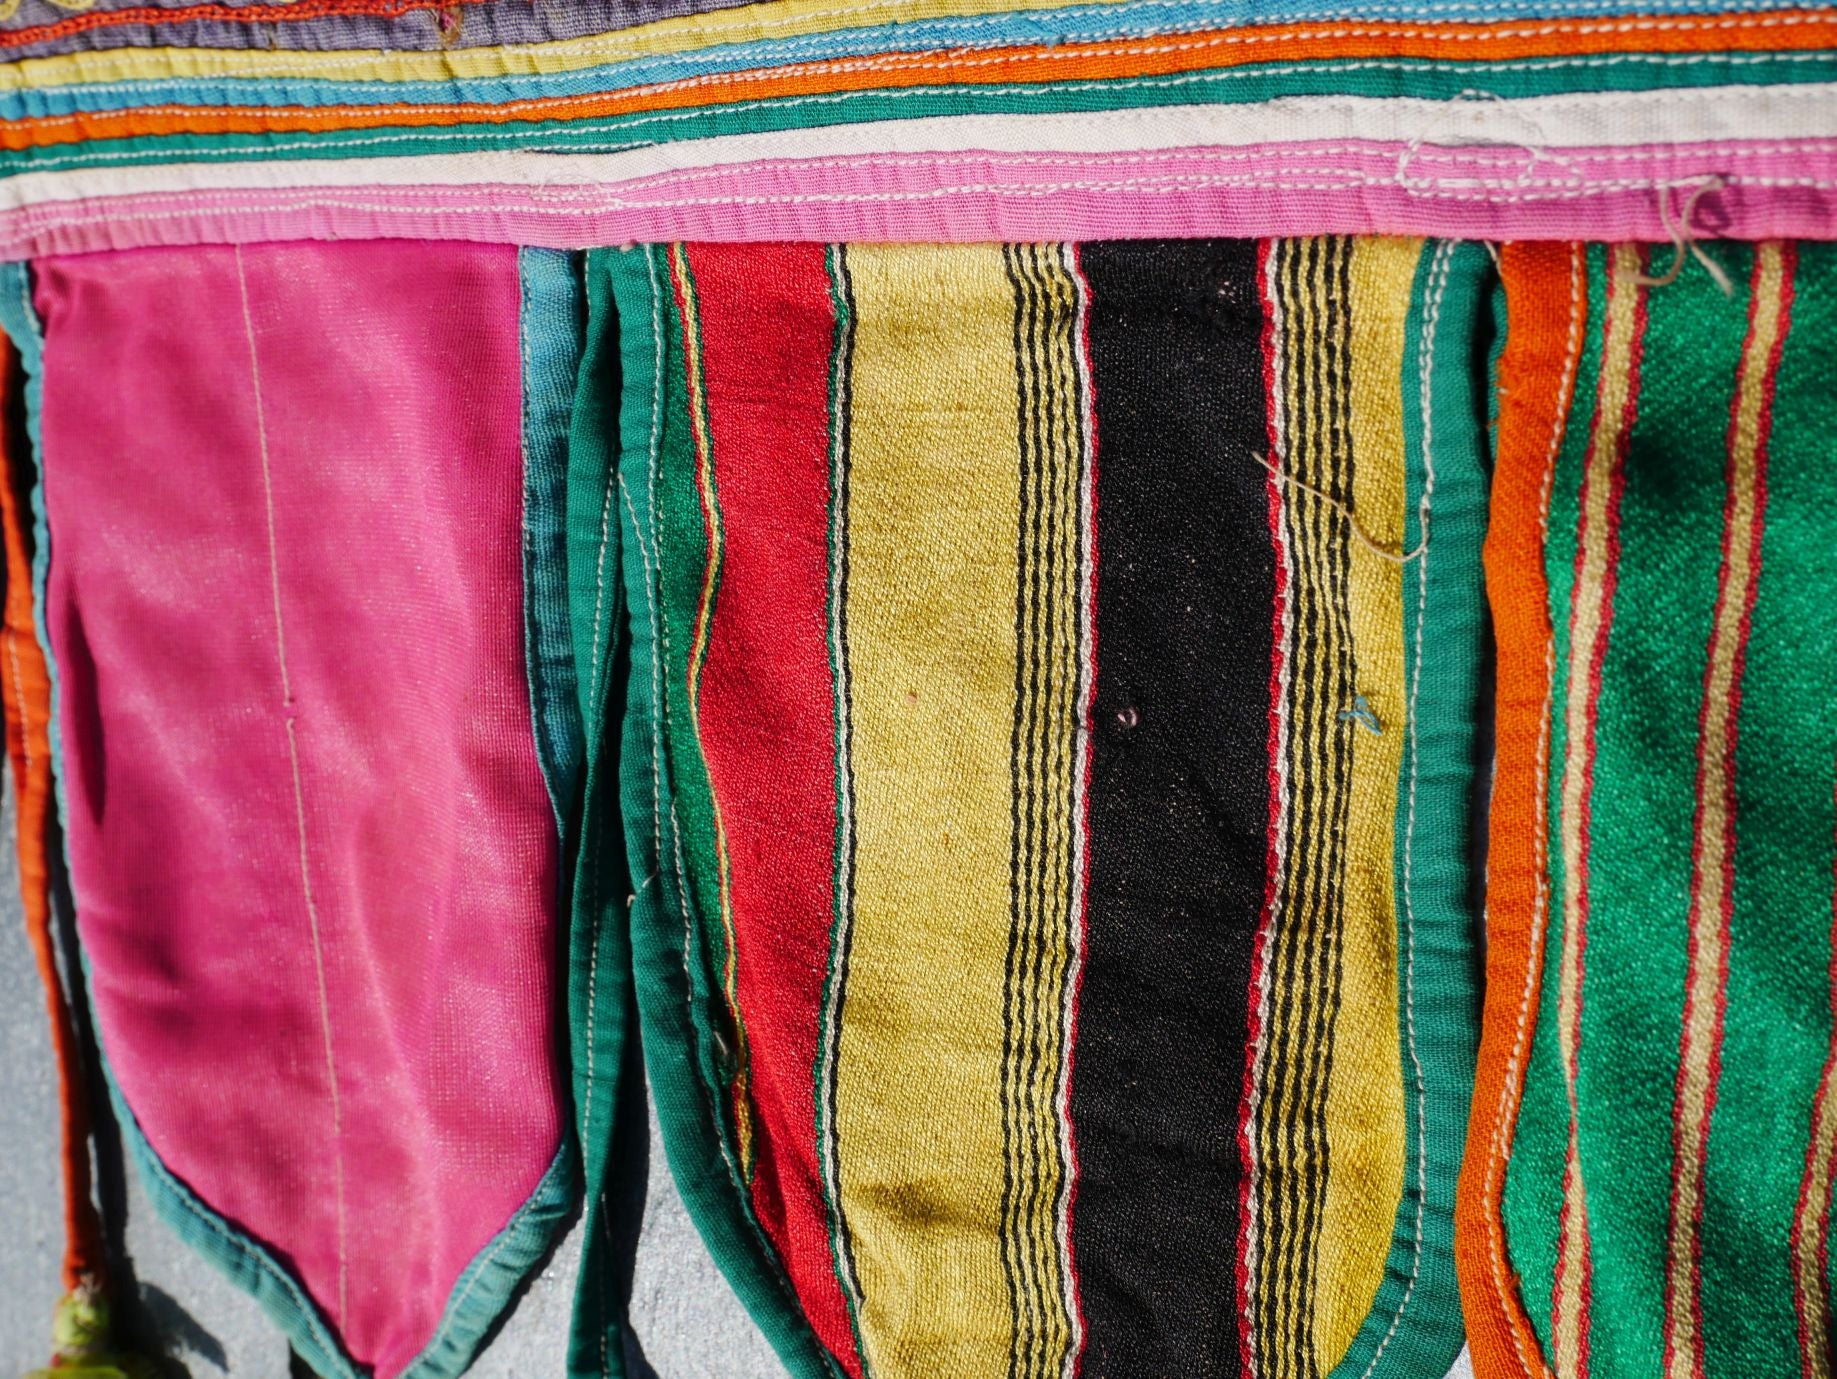 Vintange Indian toran, gypsy curtain, boho valance Banjara tribal tapestry